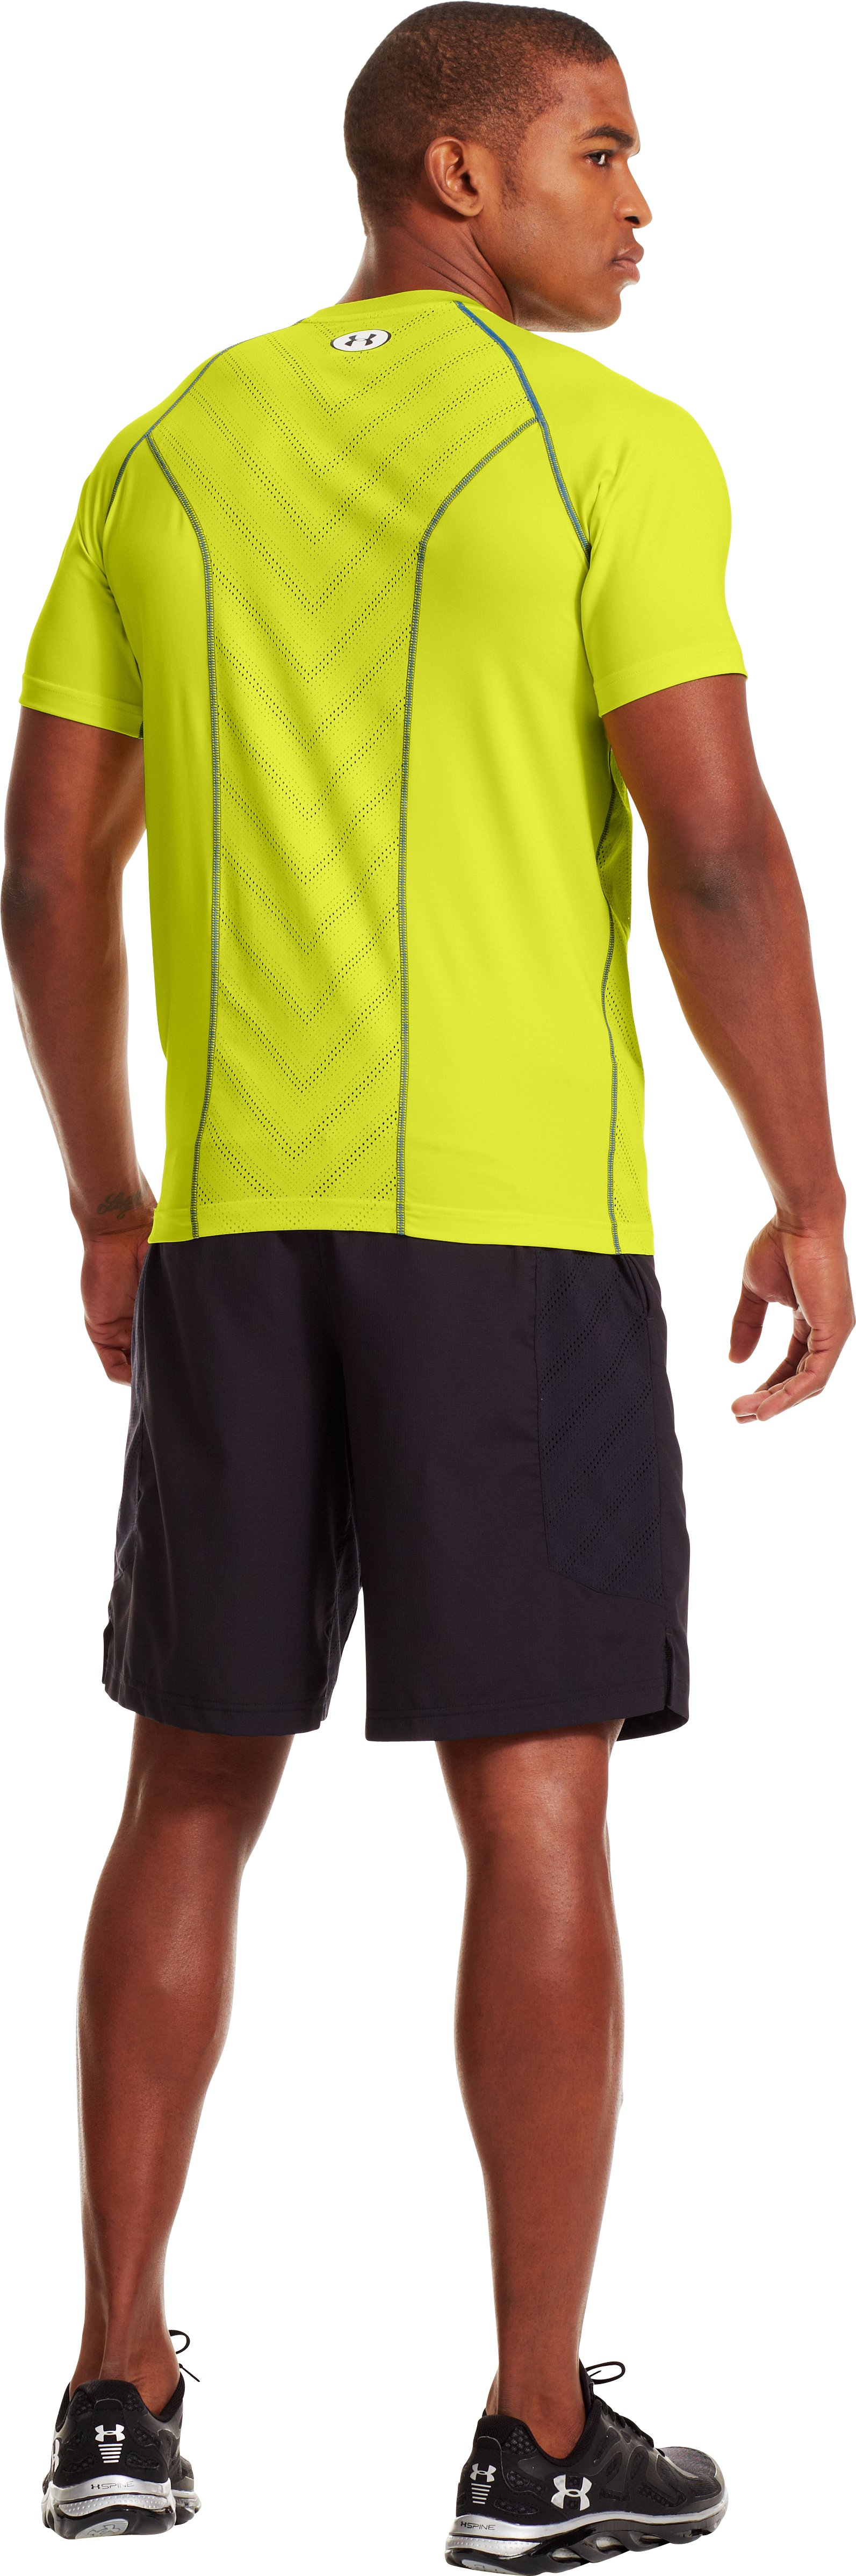 Men's HeatGear® Sonic ArmourVent™ Short Sleeve, Flash Light, Back